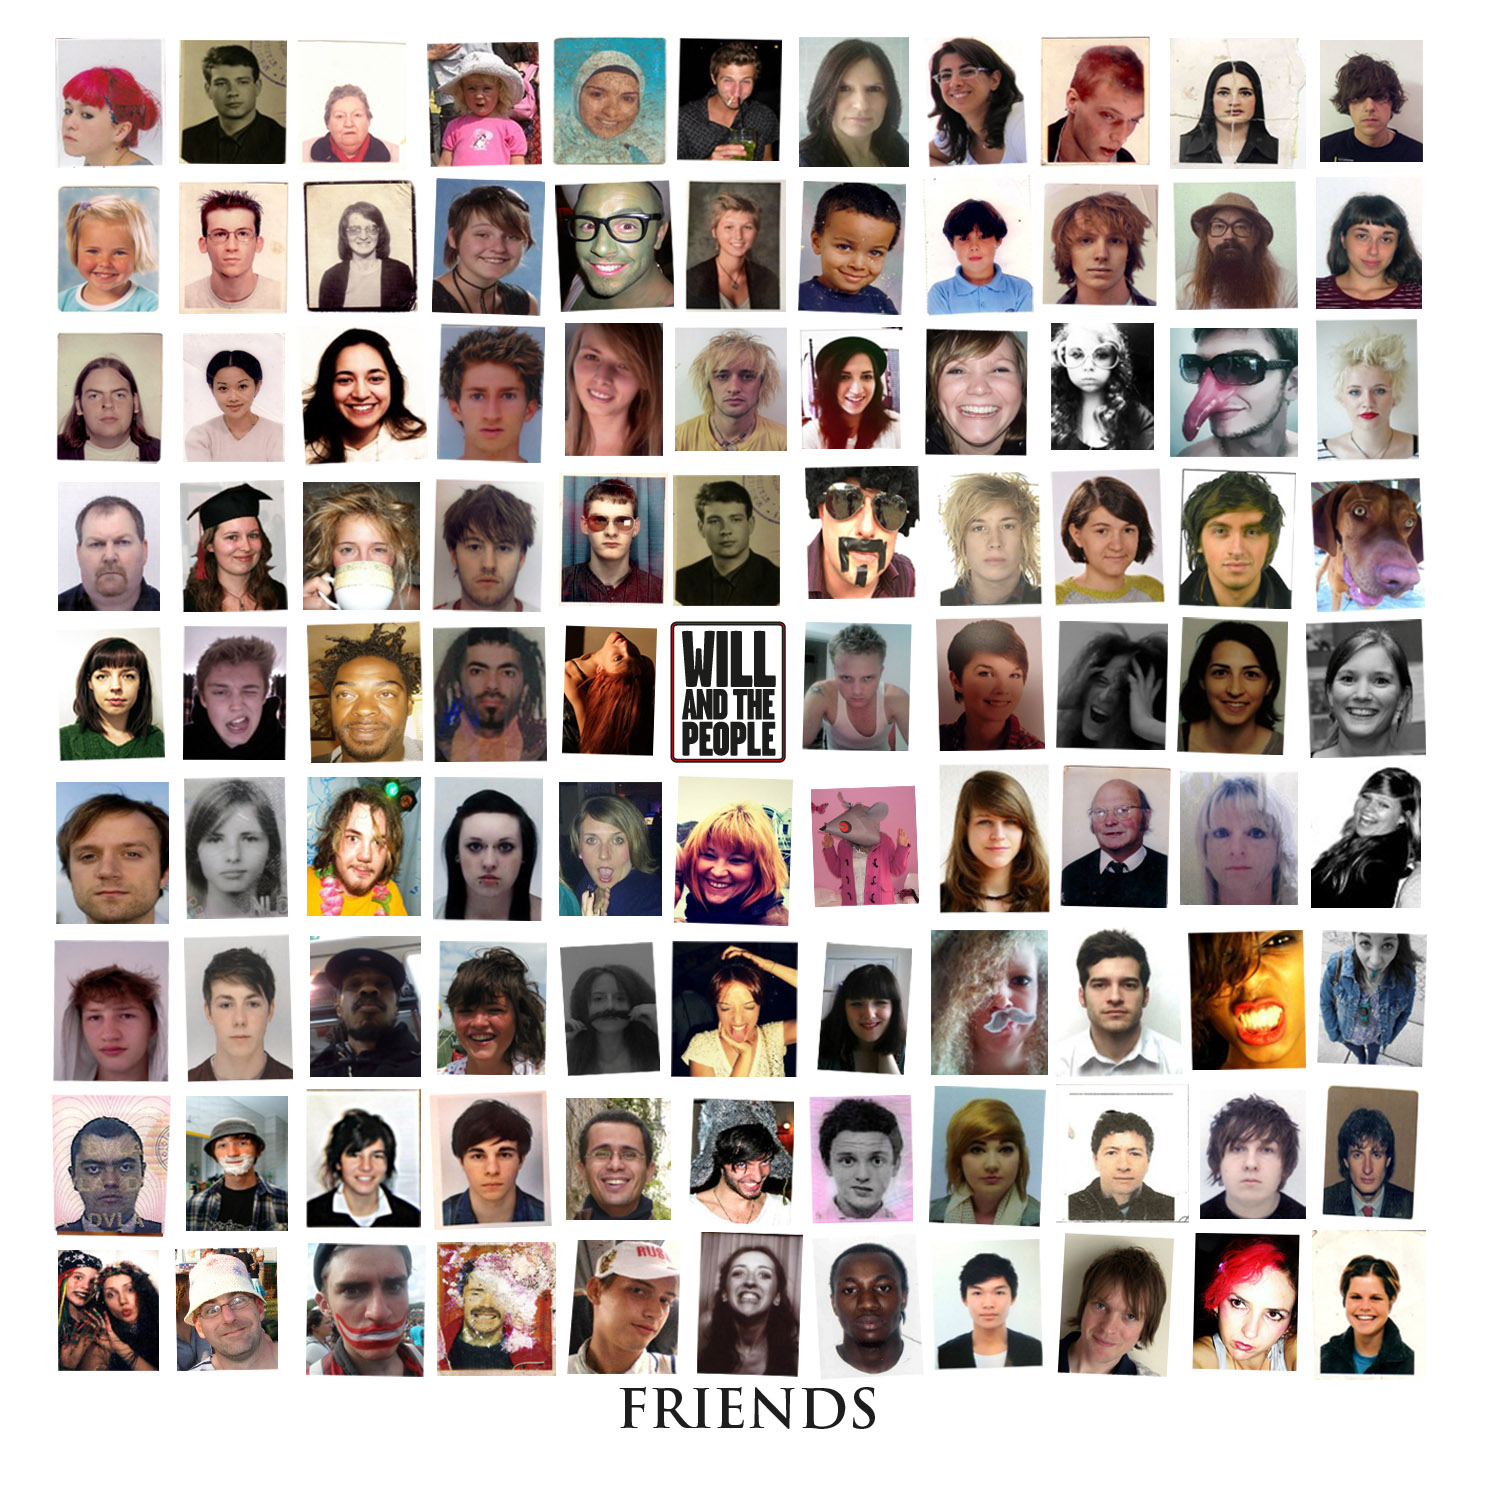 Friends Album - Will and The People